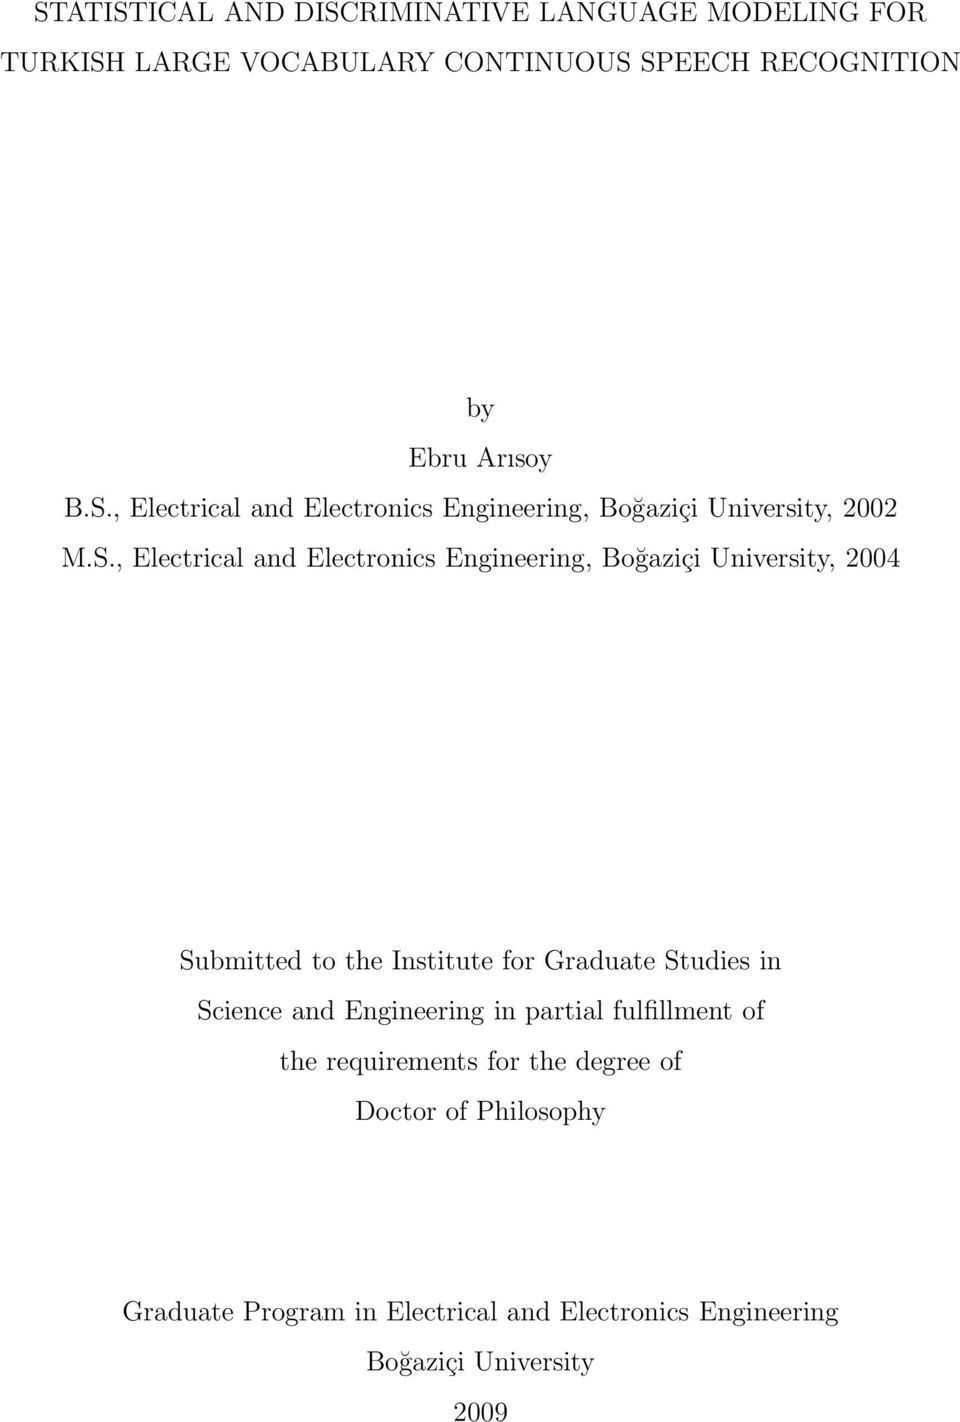 Science and Engineering in partial fulfillment of the requirements for the degree of Doctor of Philosophy Graduate Program in